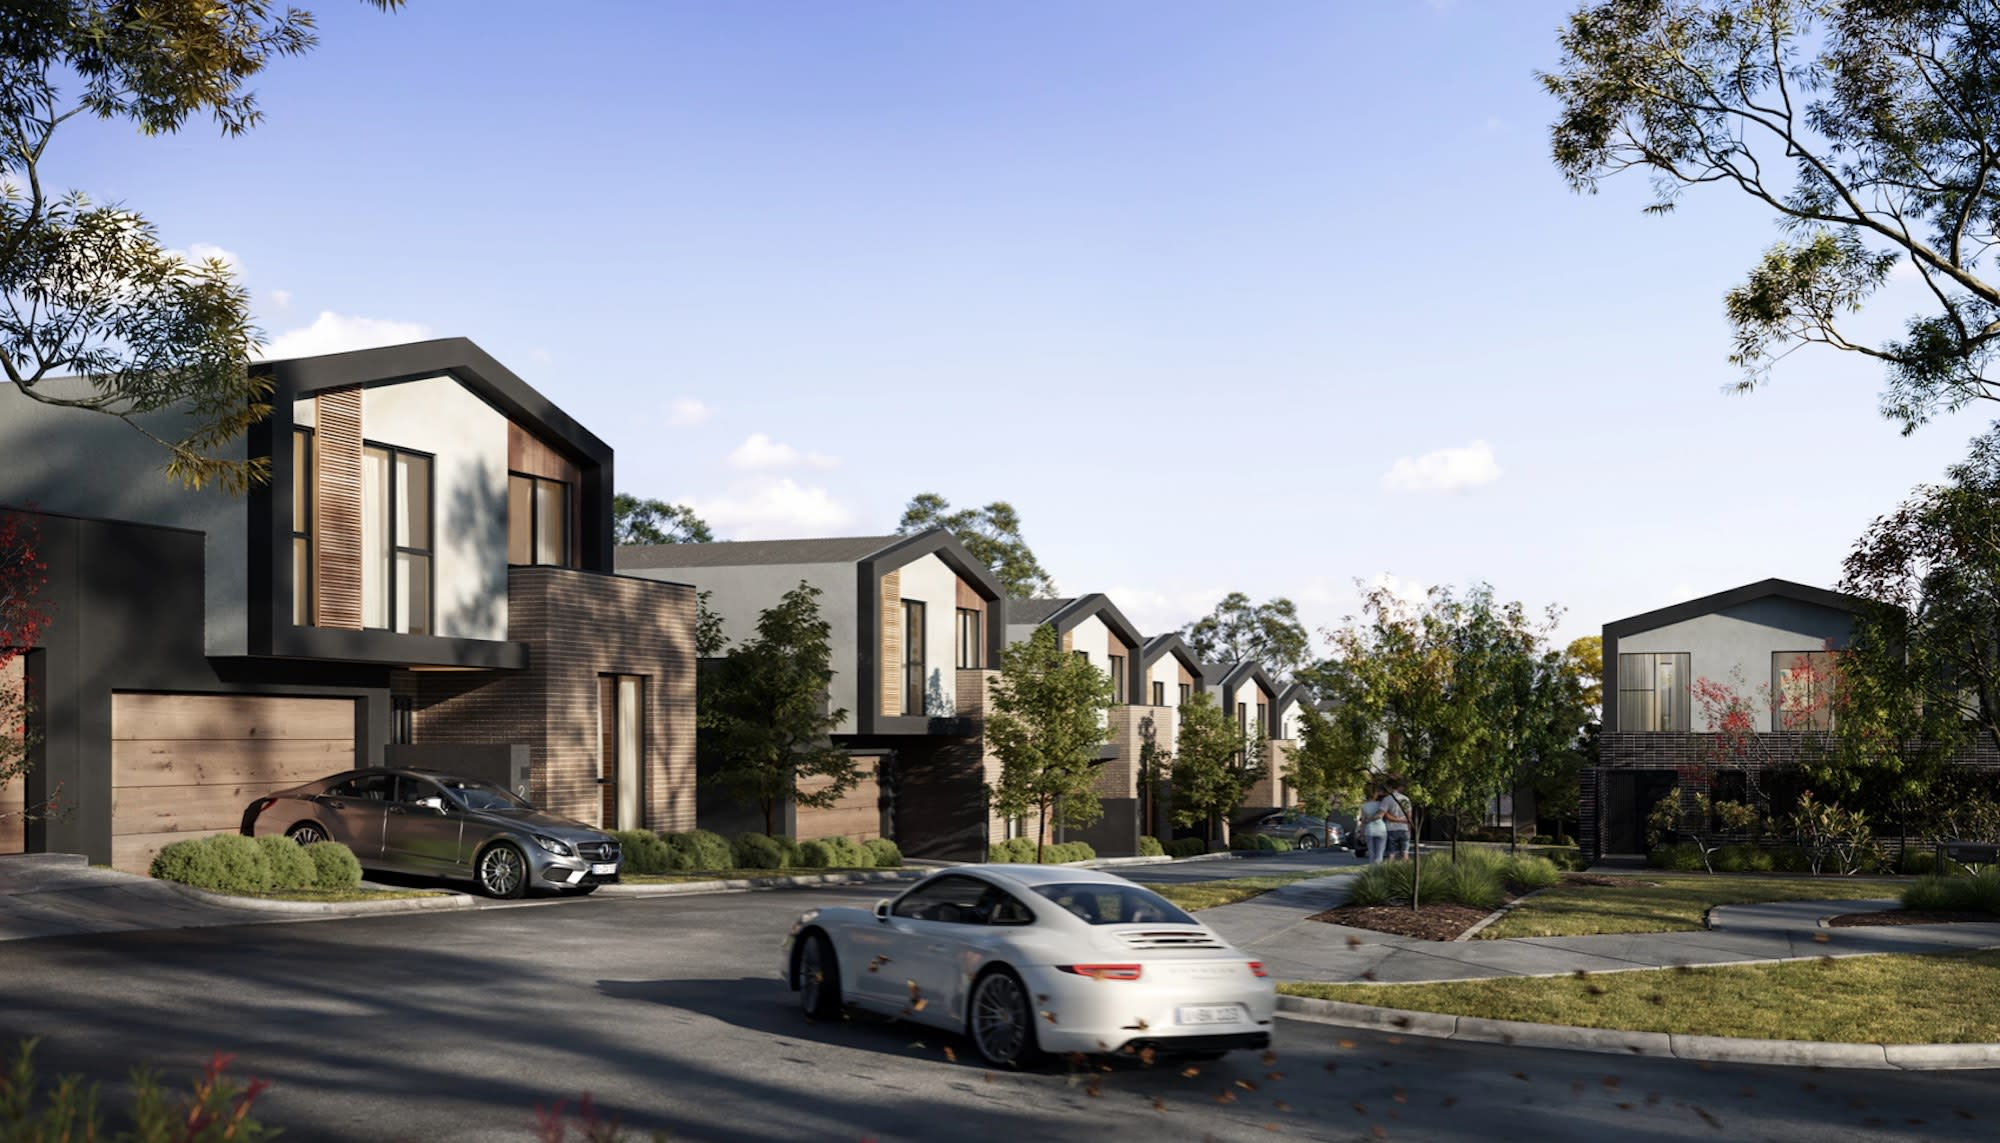 First home buyer demand sees Monolith nearly sell out Waverley Village, Mulgrave townhouses in two days